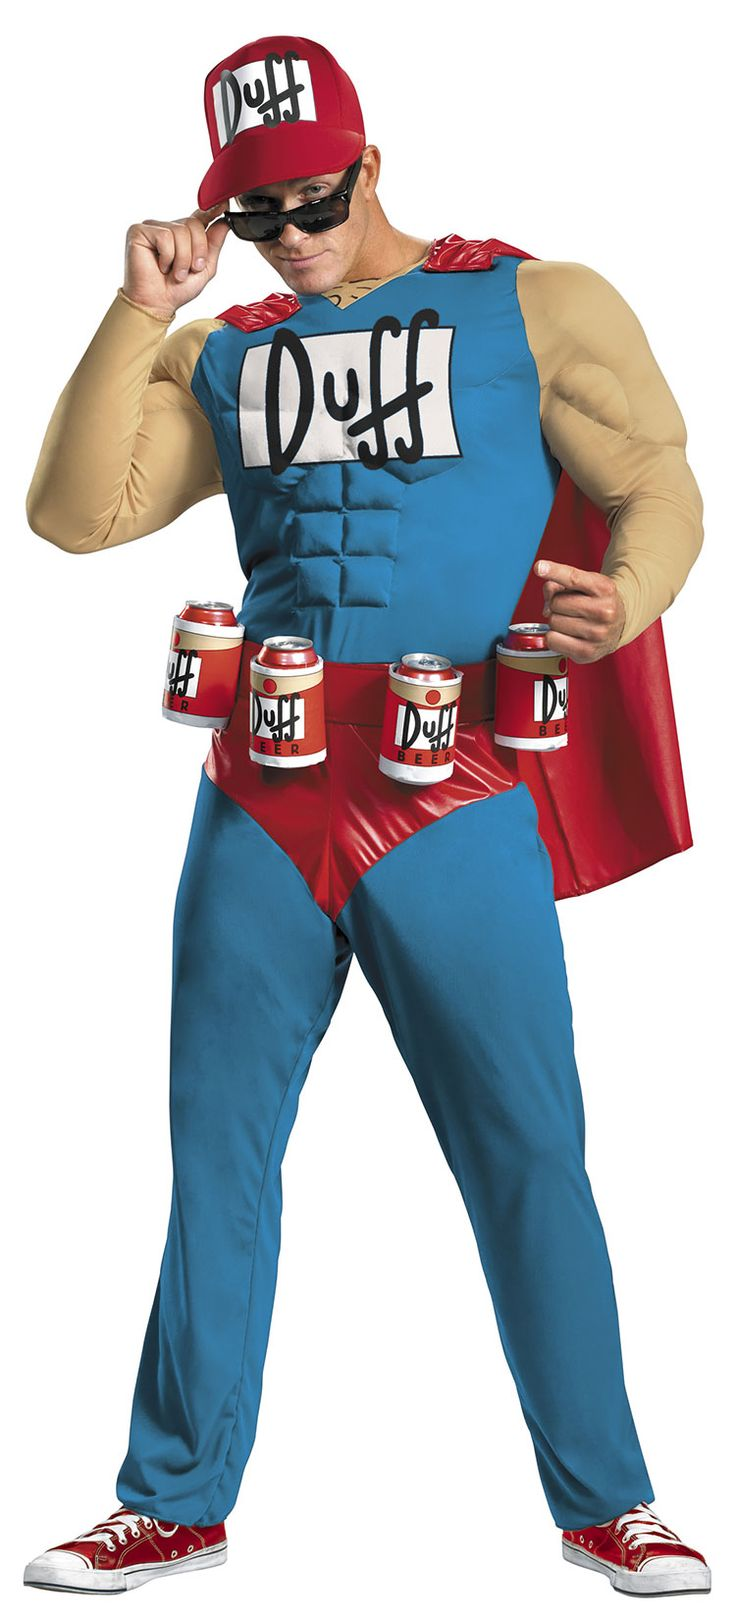 Funny Muscle Duffman Costume - The Simpsons Costumes